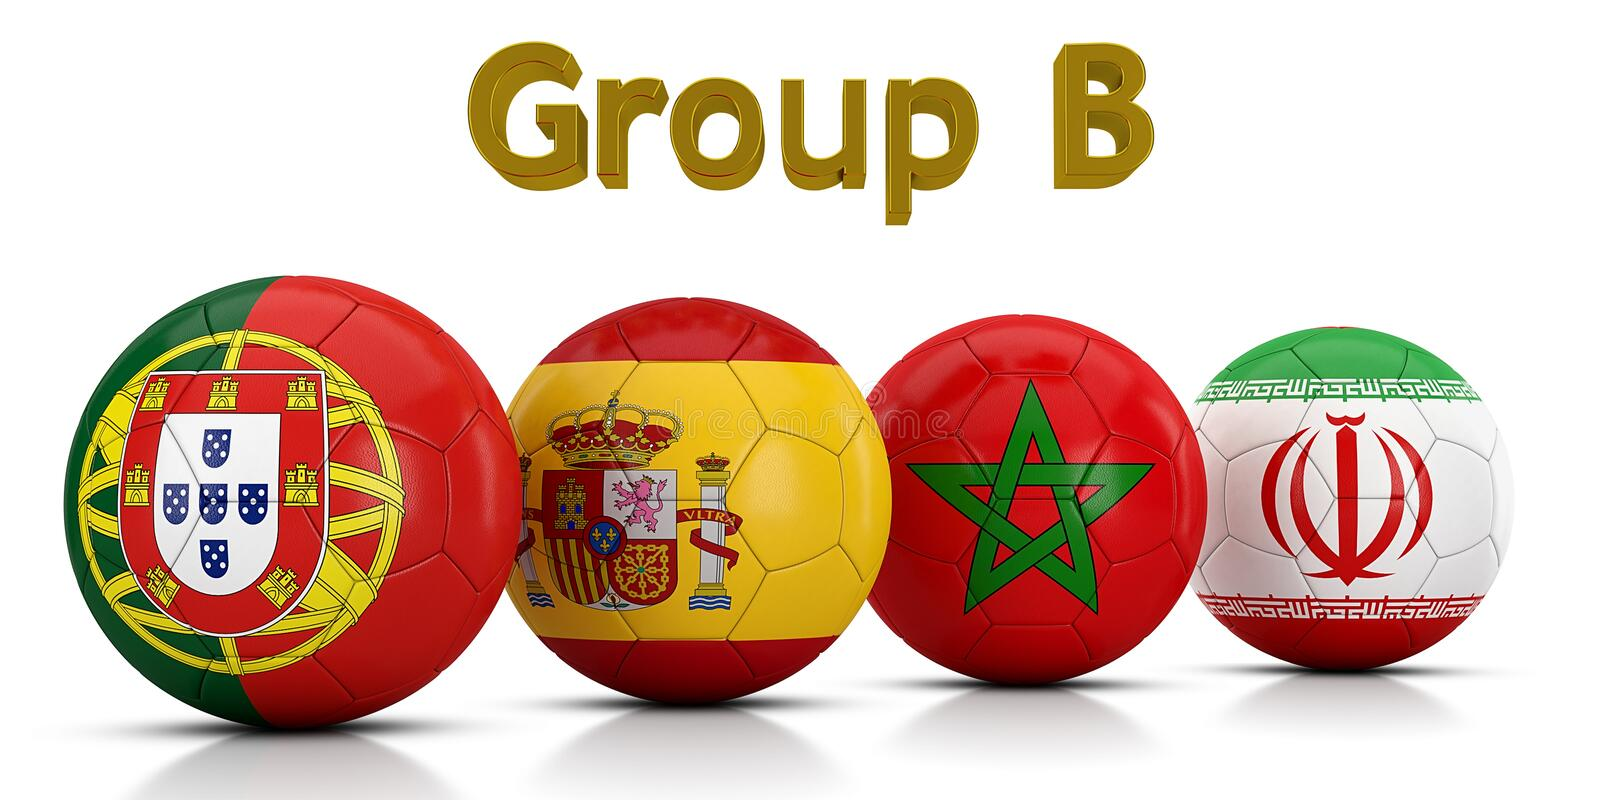 Football World championship groups 2018 - Group B represented by classic soccer balls painted with the flags of the countries stock illustration